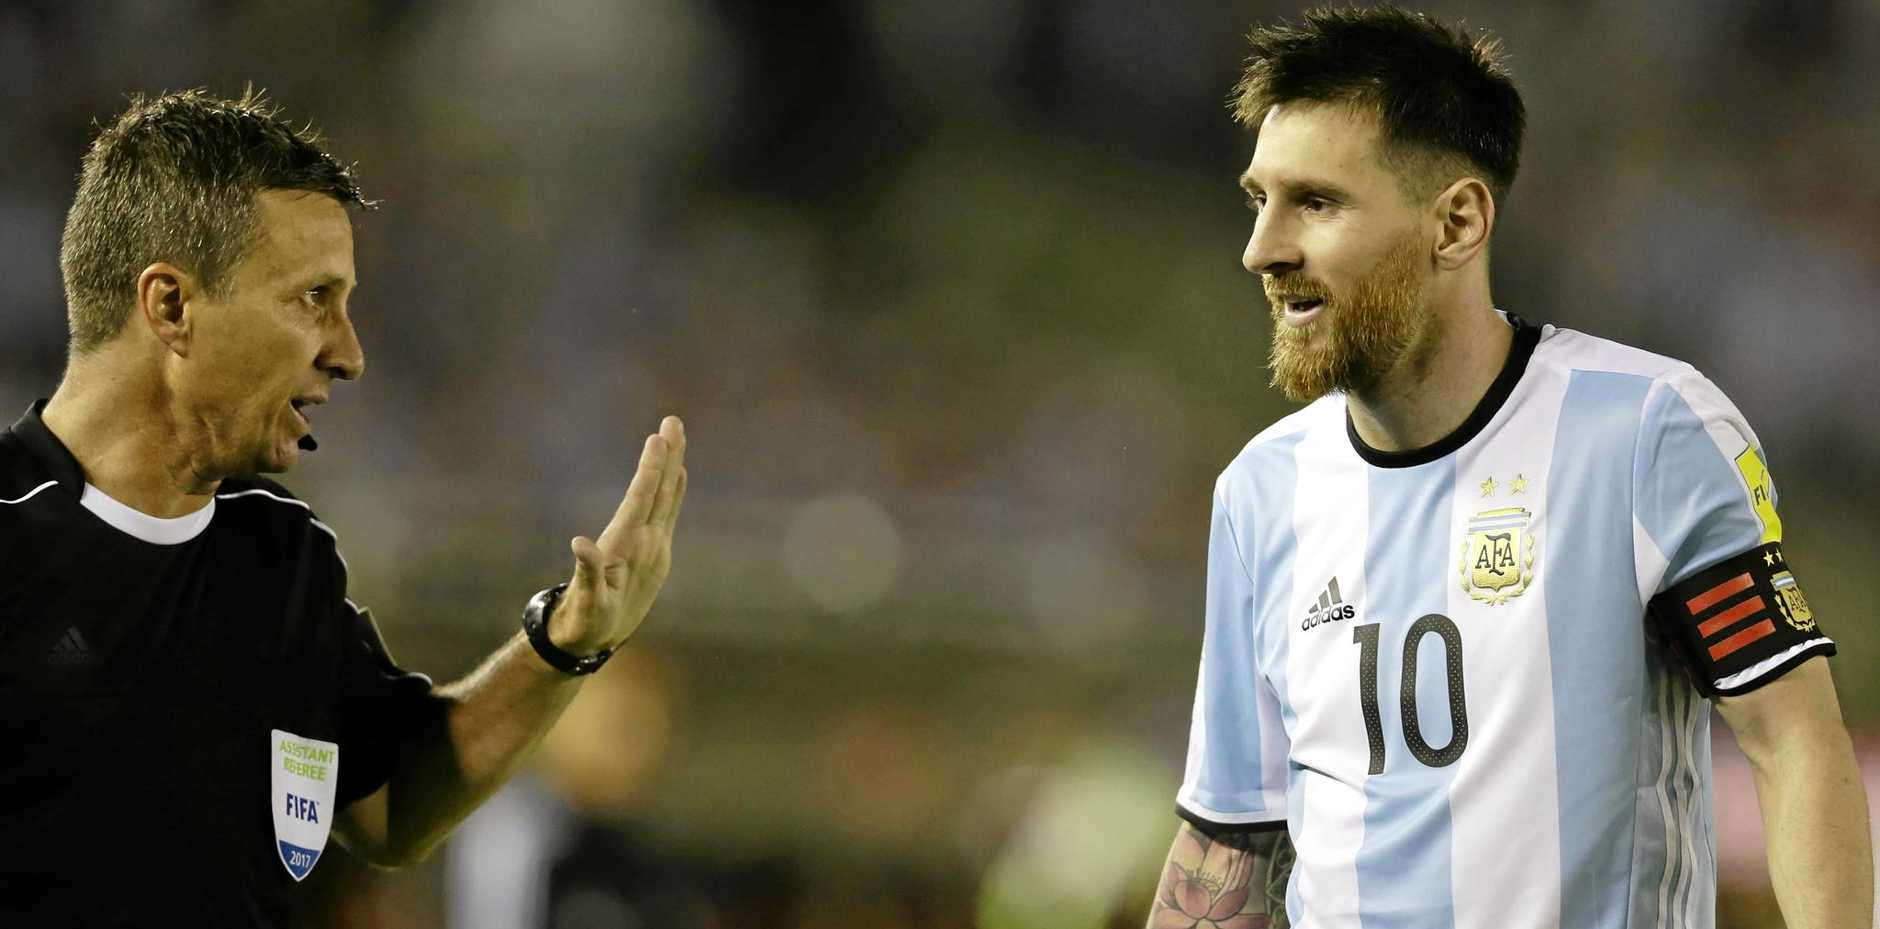 COSTLY CHAT: Lionel Messi's